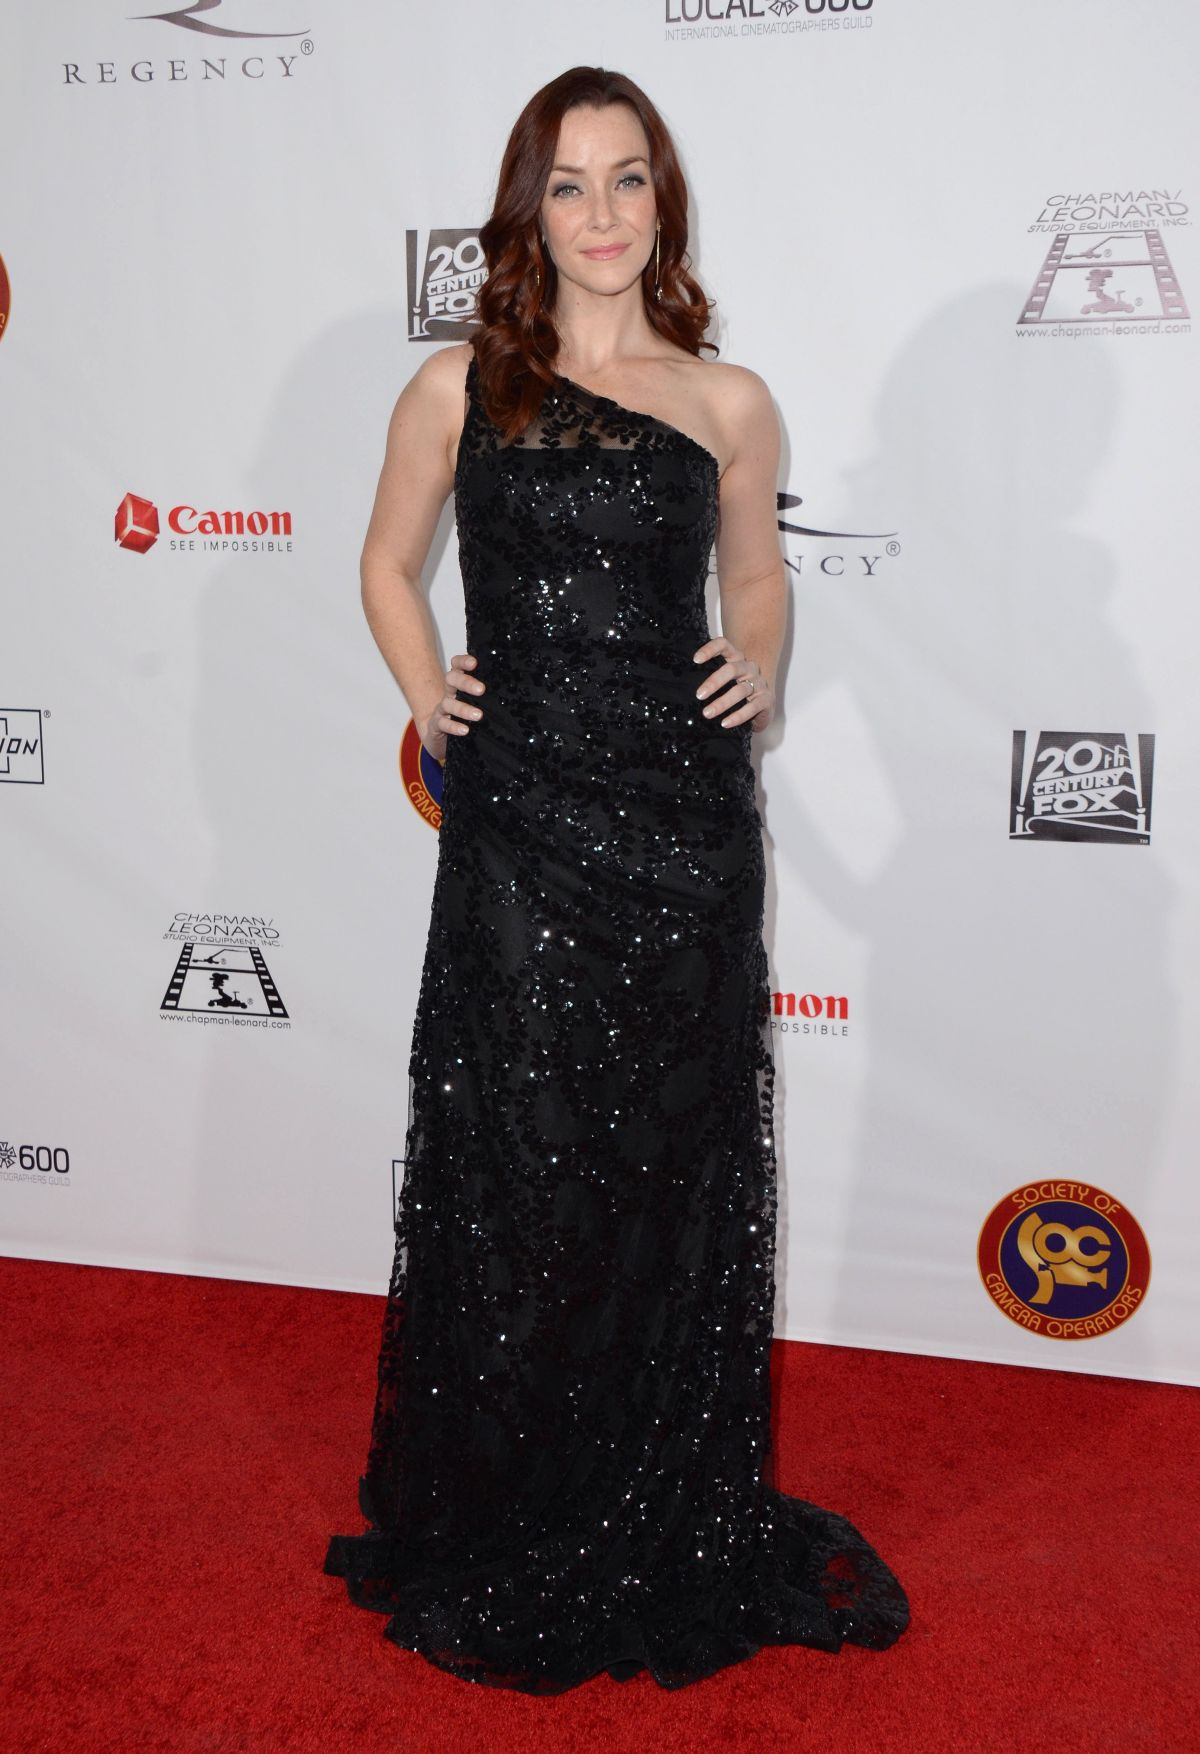 ANNIE WERSCHING at Society of Camera Operators Lifetime Achievement Awards in Los Angeles 02/06/2016